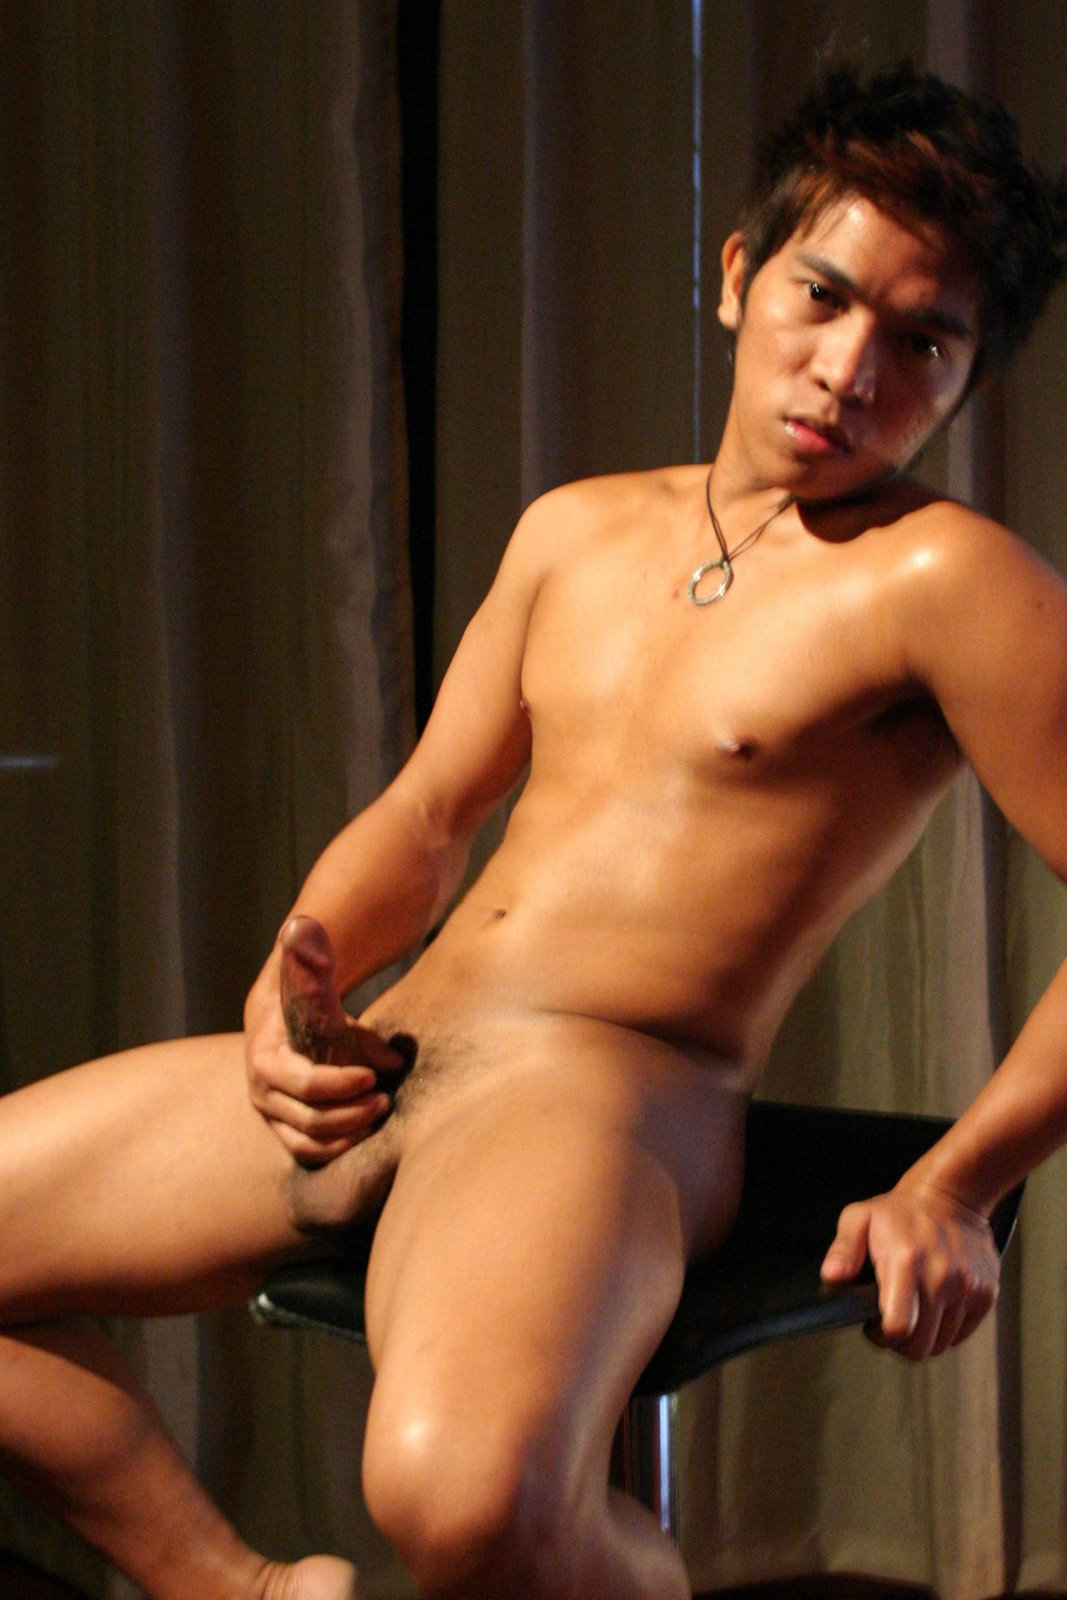 Nude Pic Of Allan  Pme Pinoy And Asian Hot Men-1838